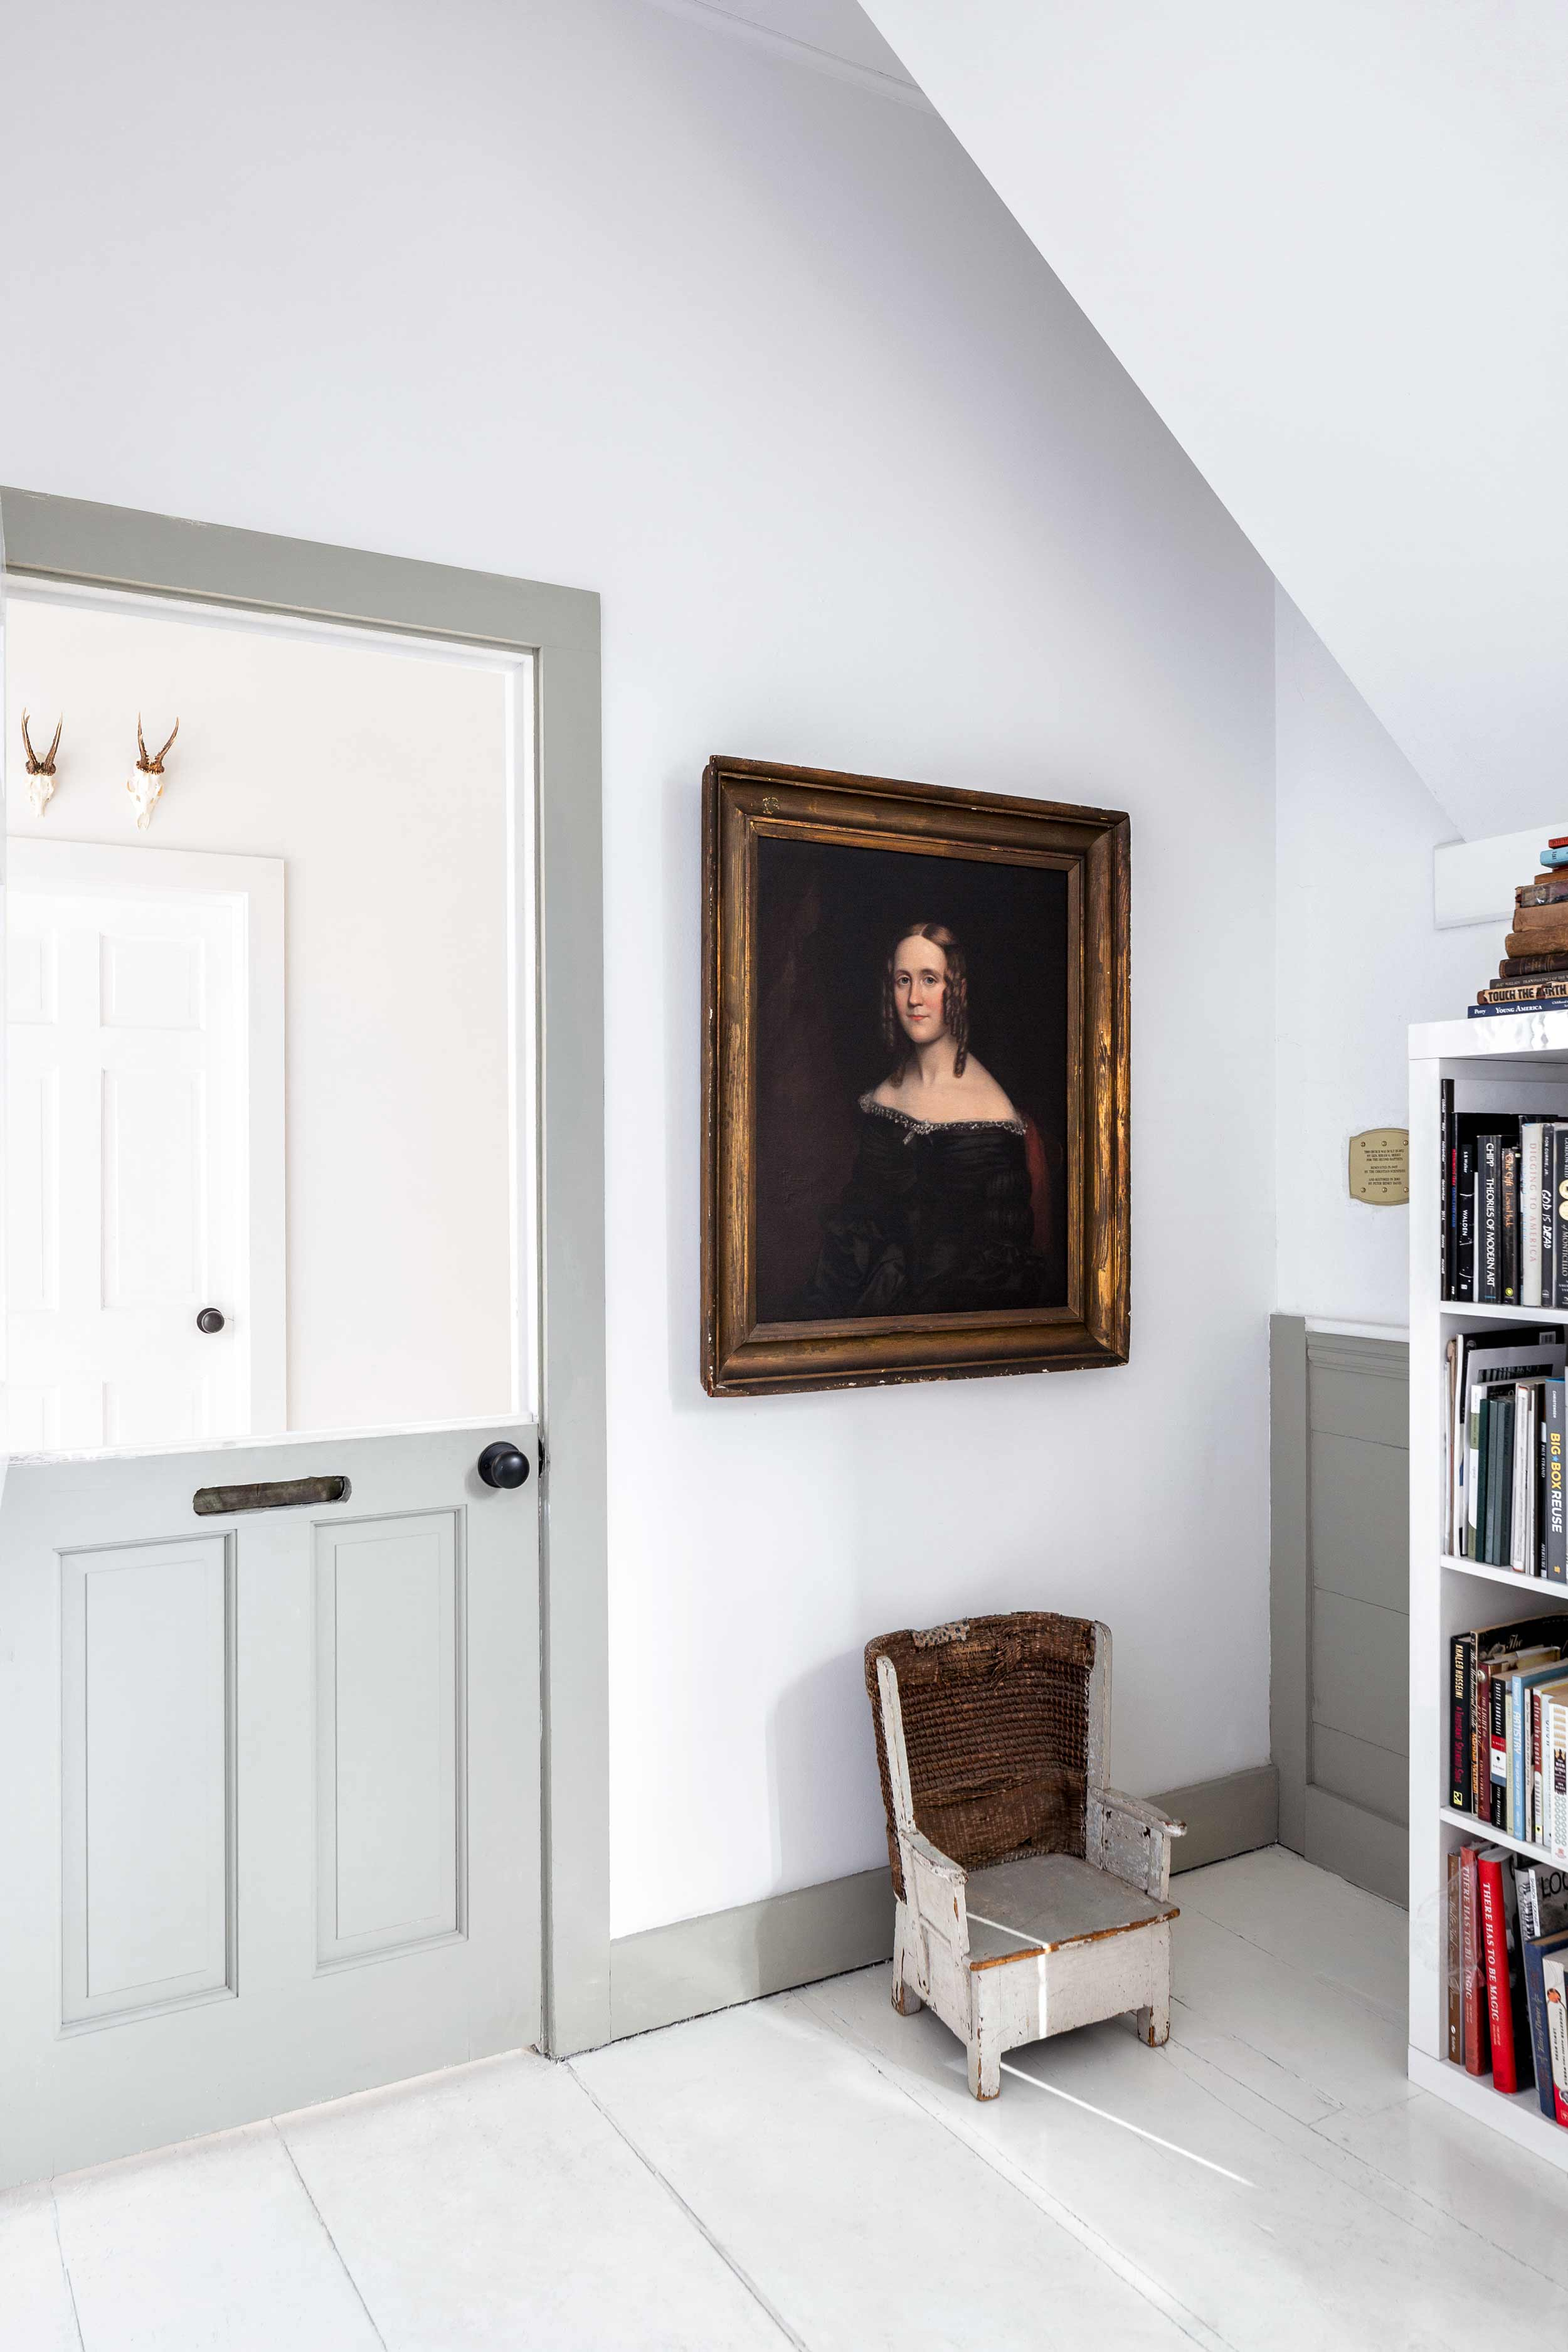 In the reading room, an antique Dutch door with mail slot. The portrait is of Clarissa Pear, the distant relative of a college friend. Below is an antique child's chair.